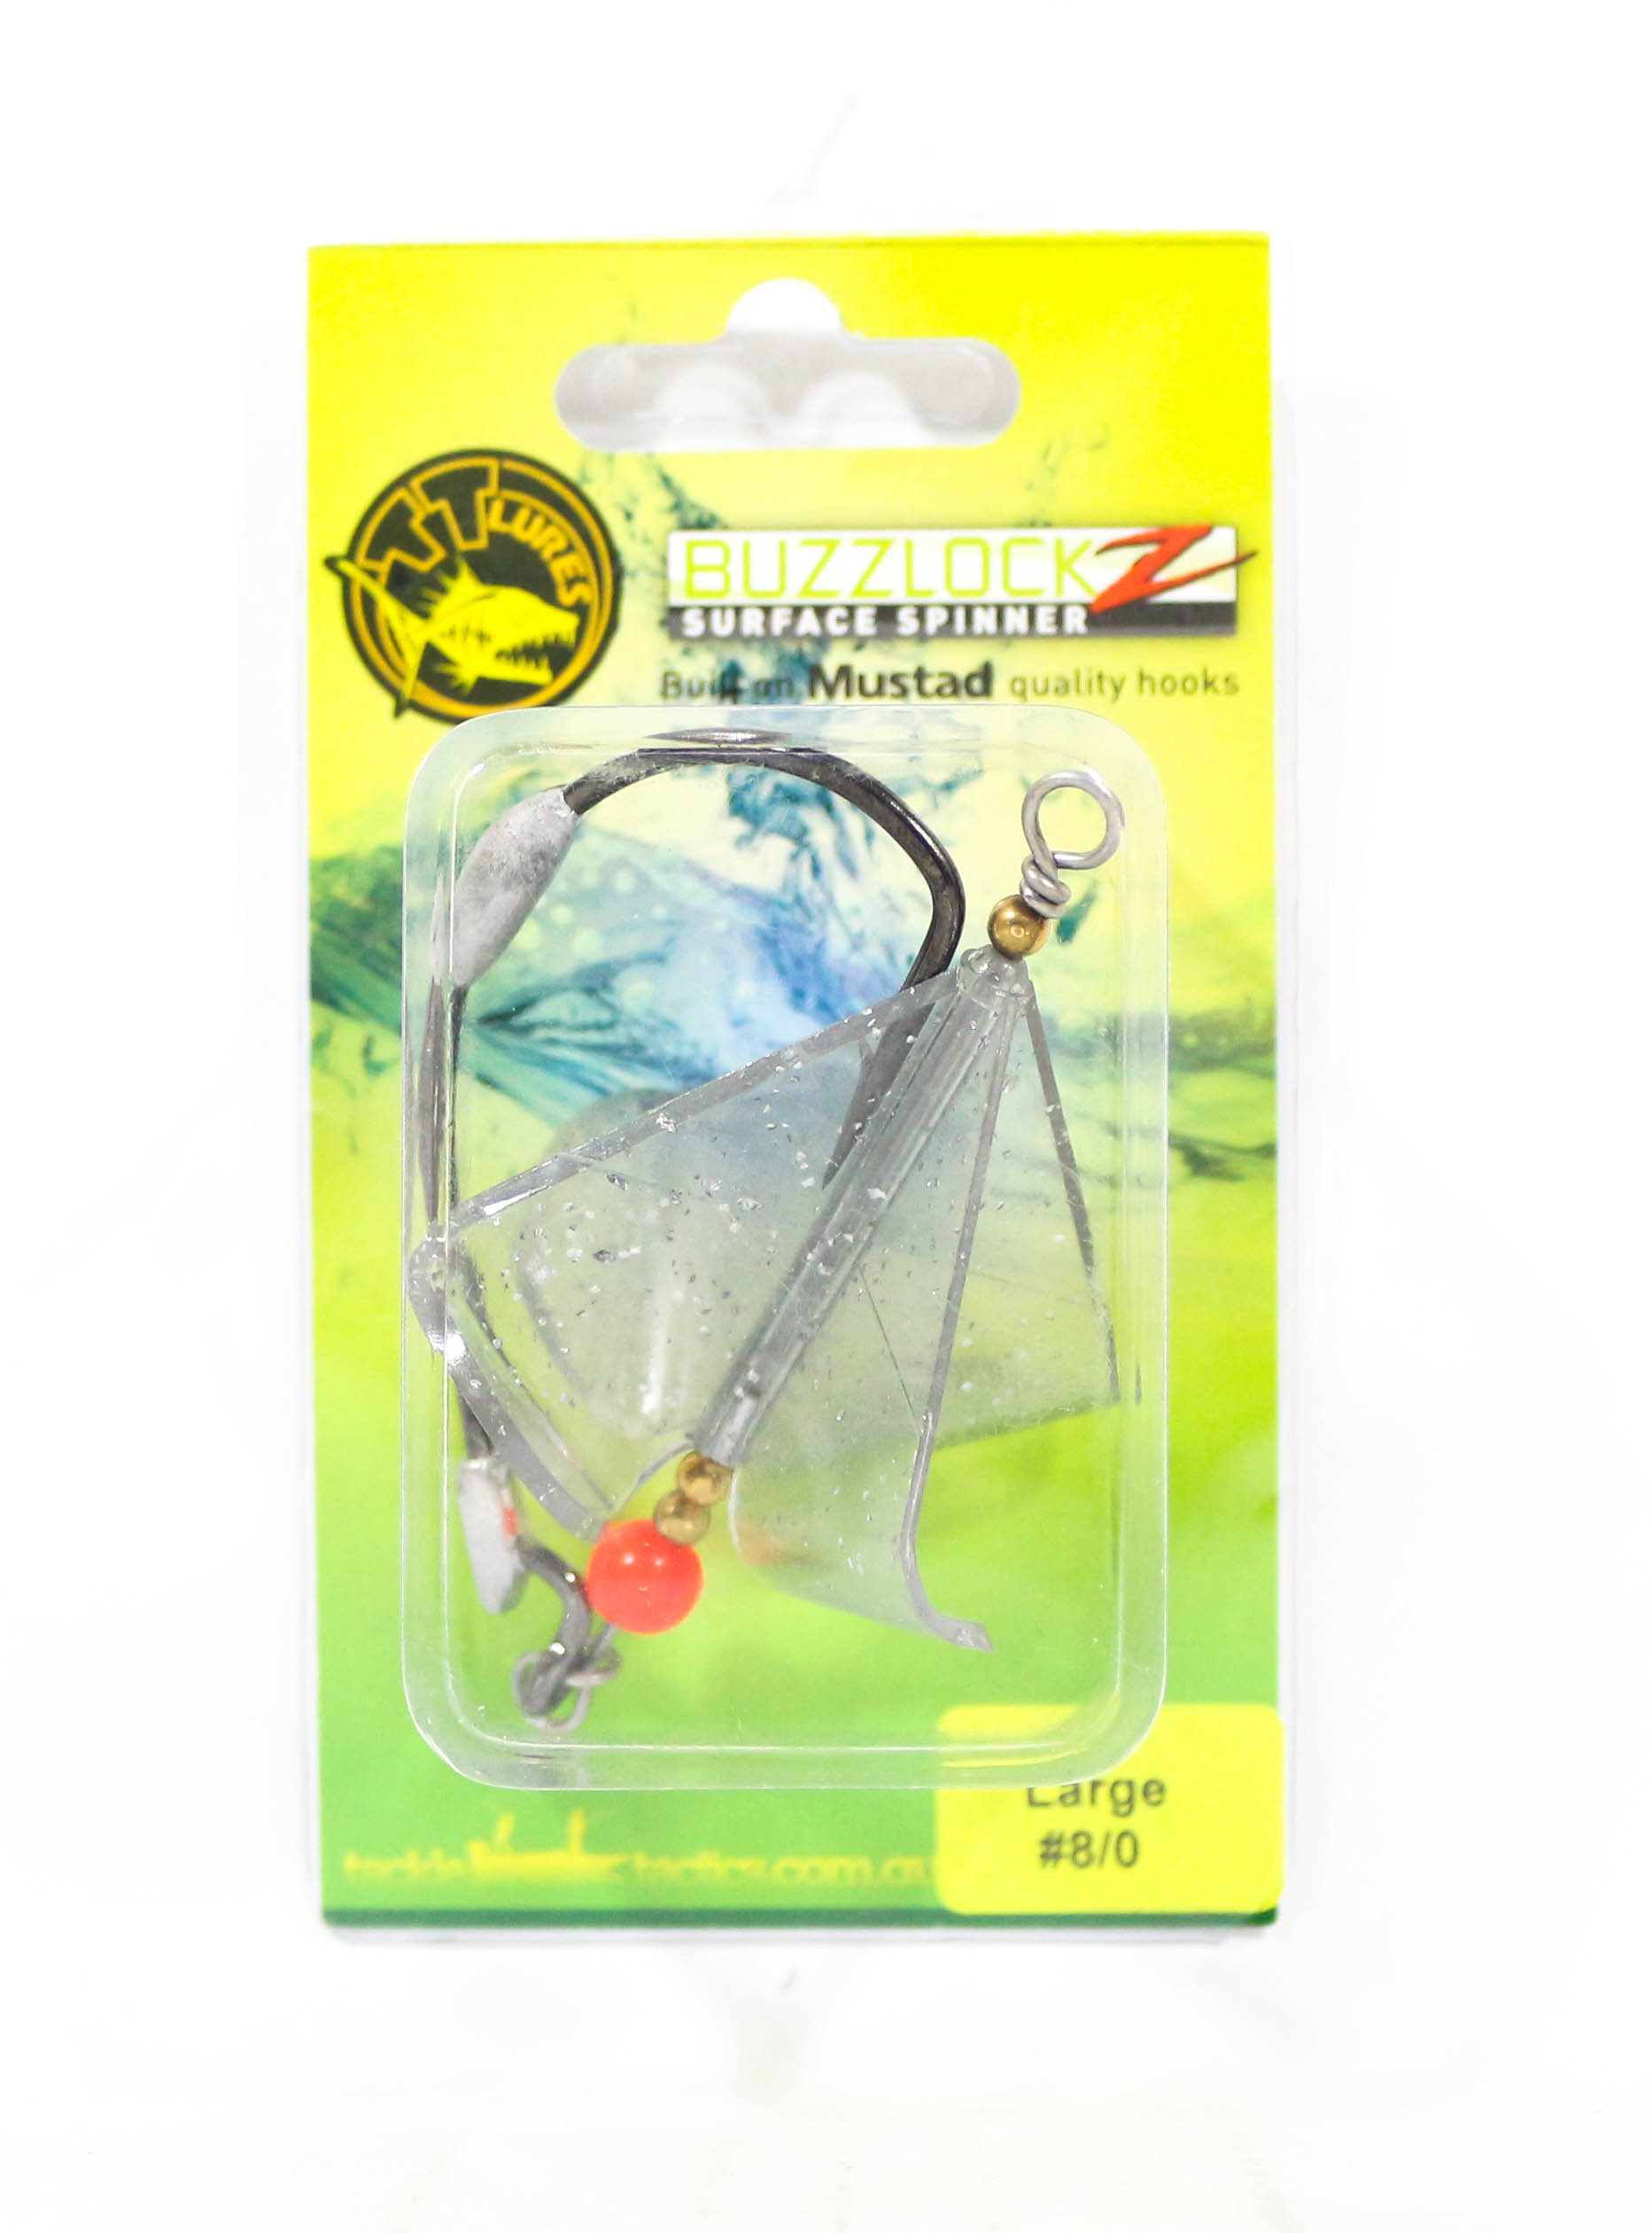 Tackle Tactics TT Buzzlockz Large 8/0 1 per pack (6177)